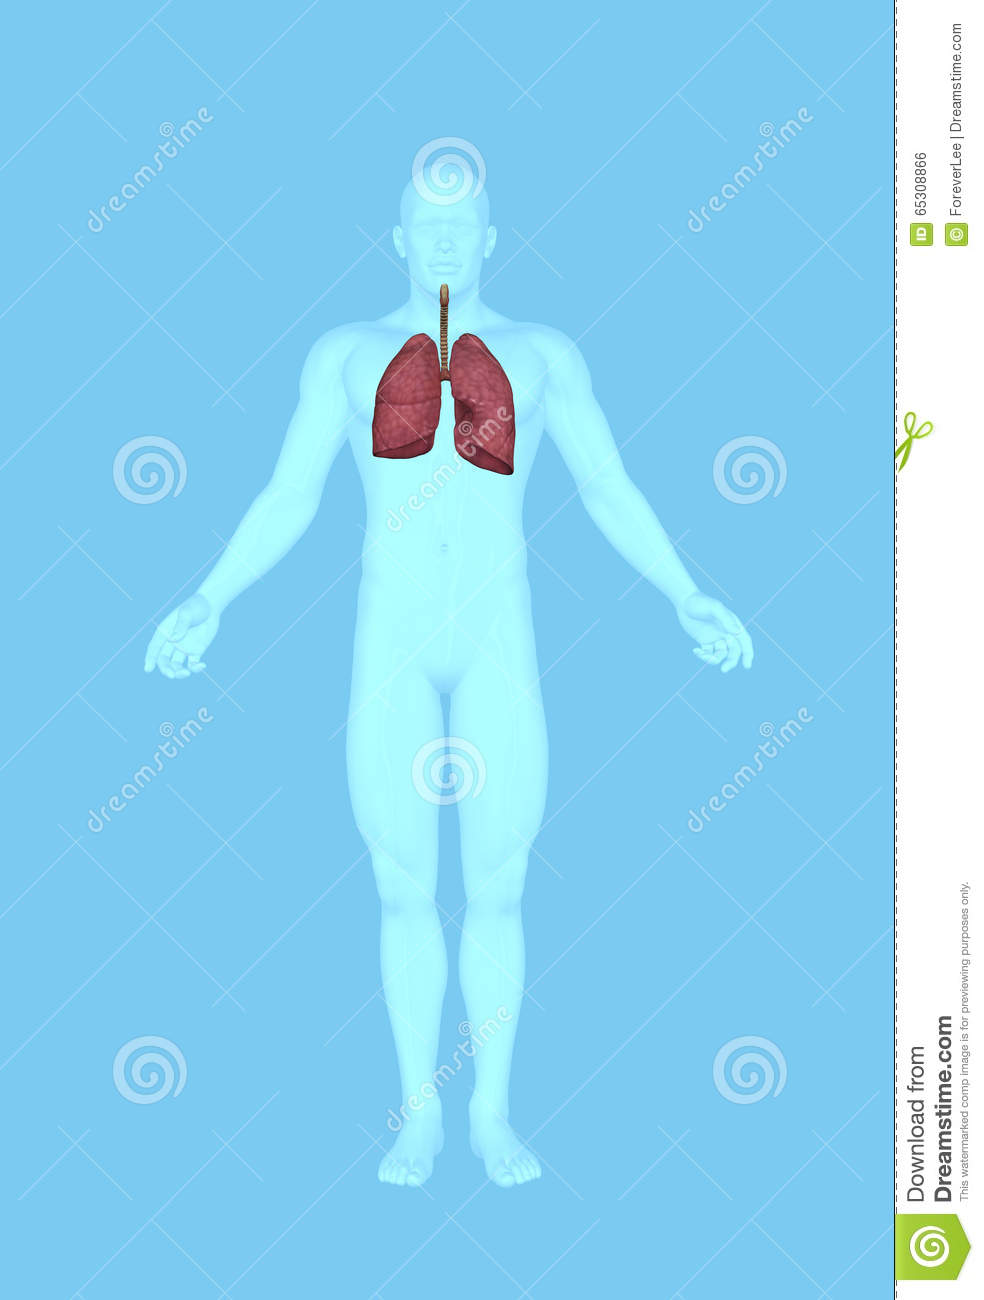 Human Anatomy Of Male Lungs Stock Illustration - Illustration of ...